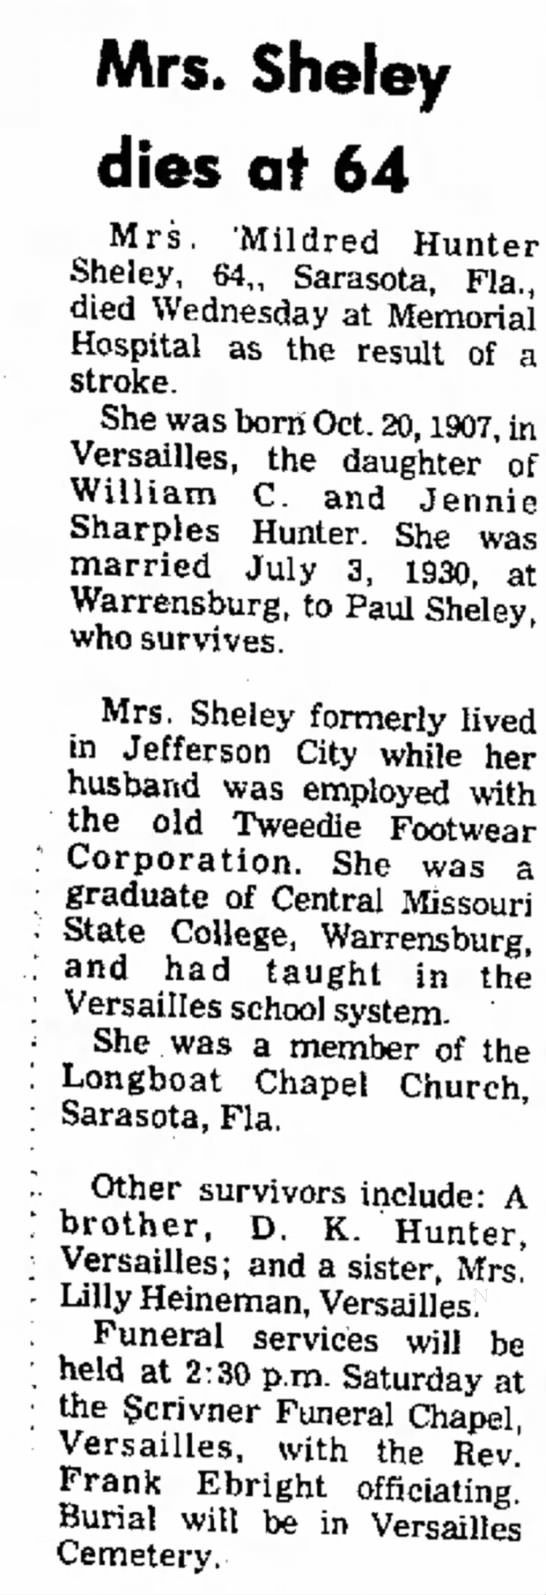 Mrs. Mildred (Hunter) Sheley newspaper obituary